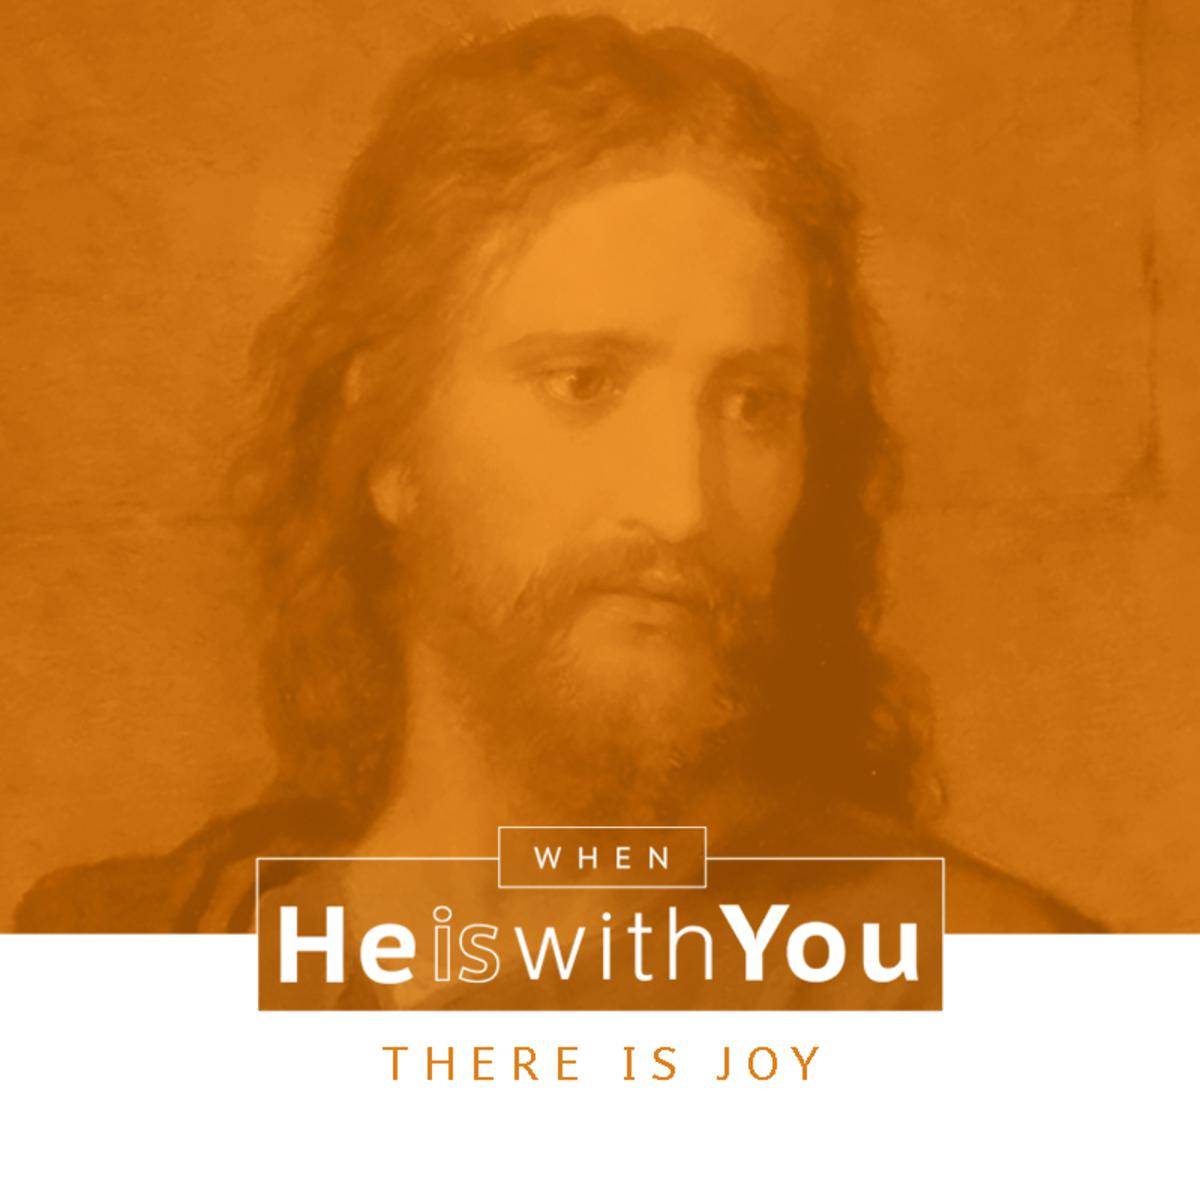 When He is with you there is joy